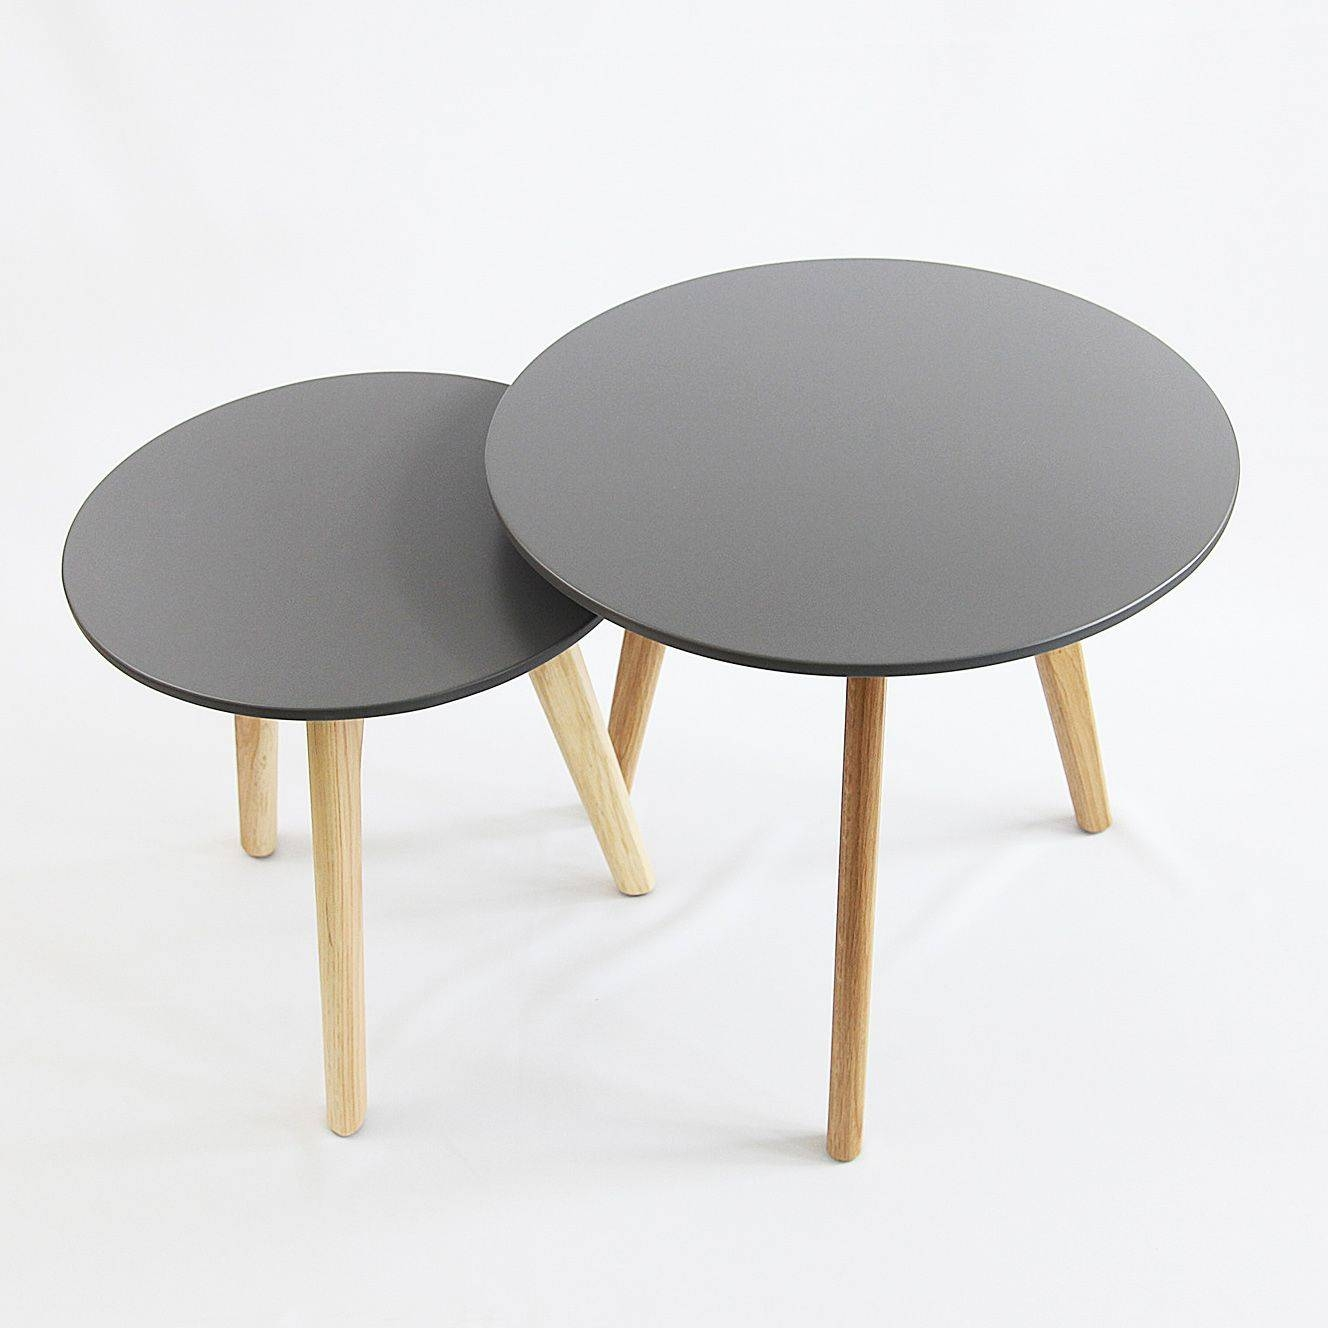 Spio Nest Of Tables Round Table Side Coffee Table - Grey intended for Nest Coffee Tables (Image 25 of 30)